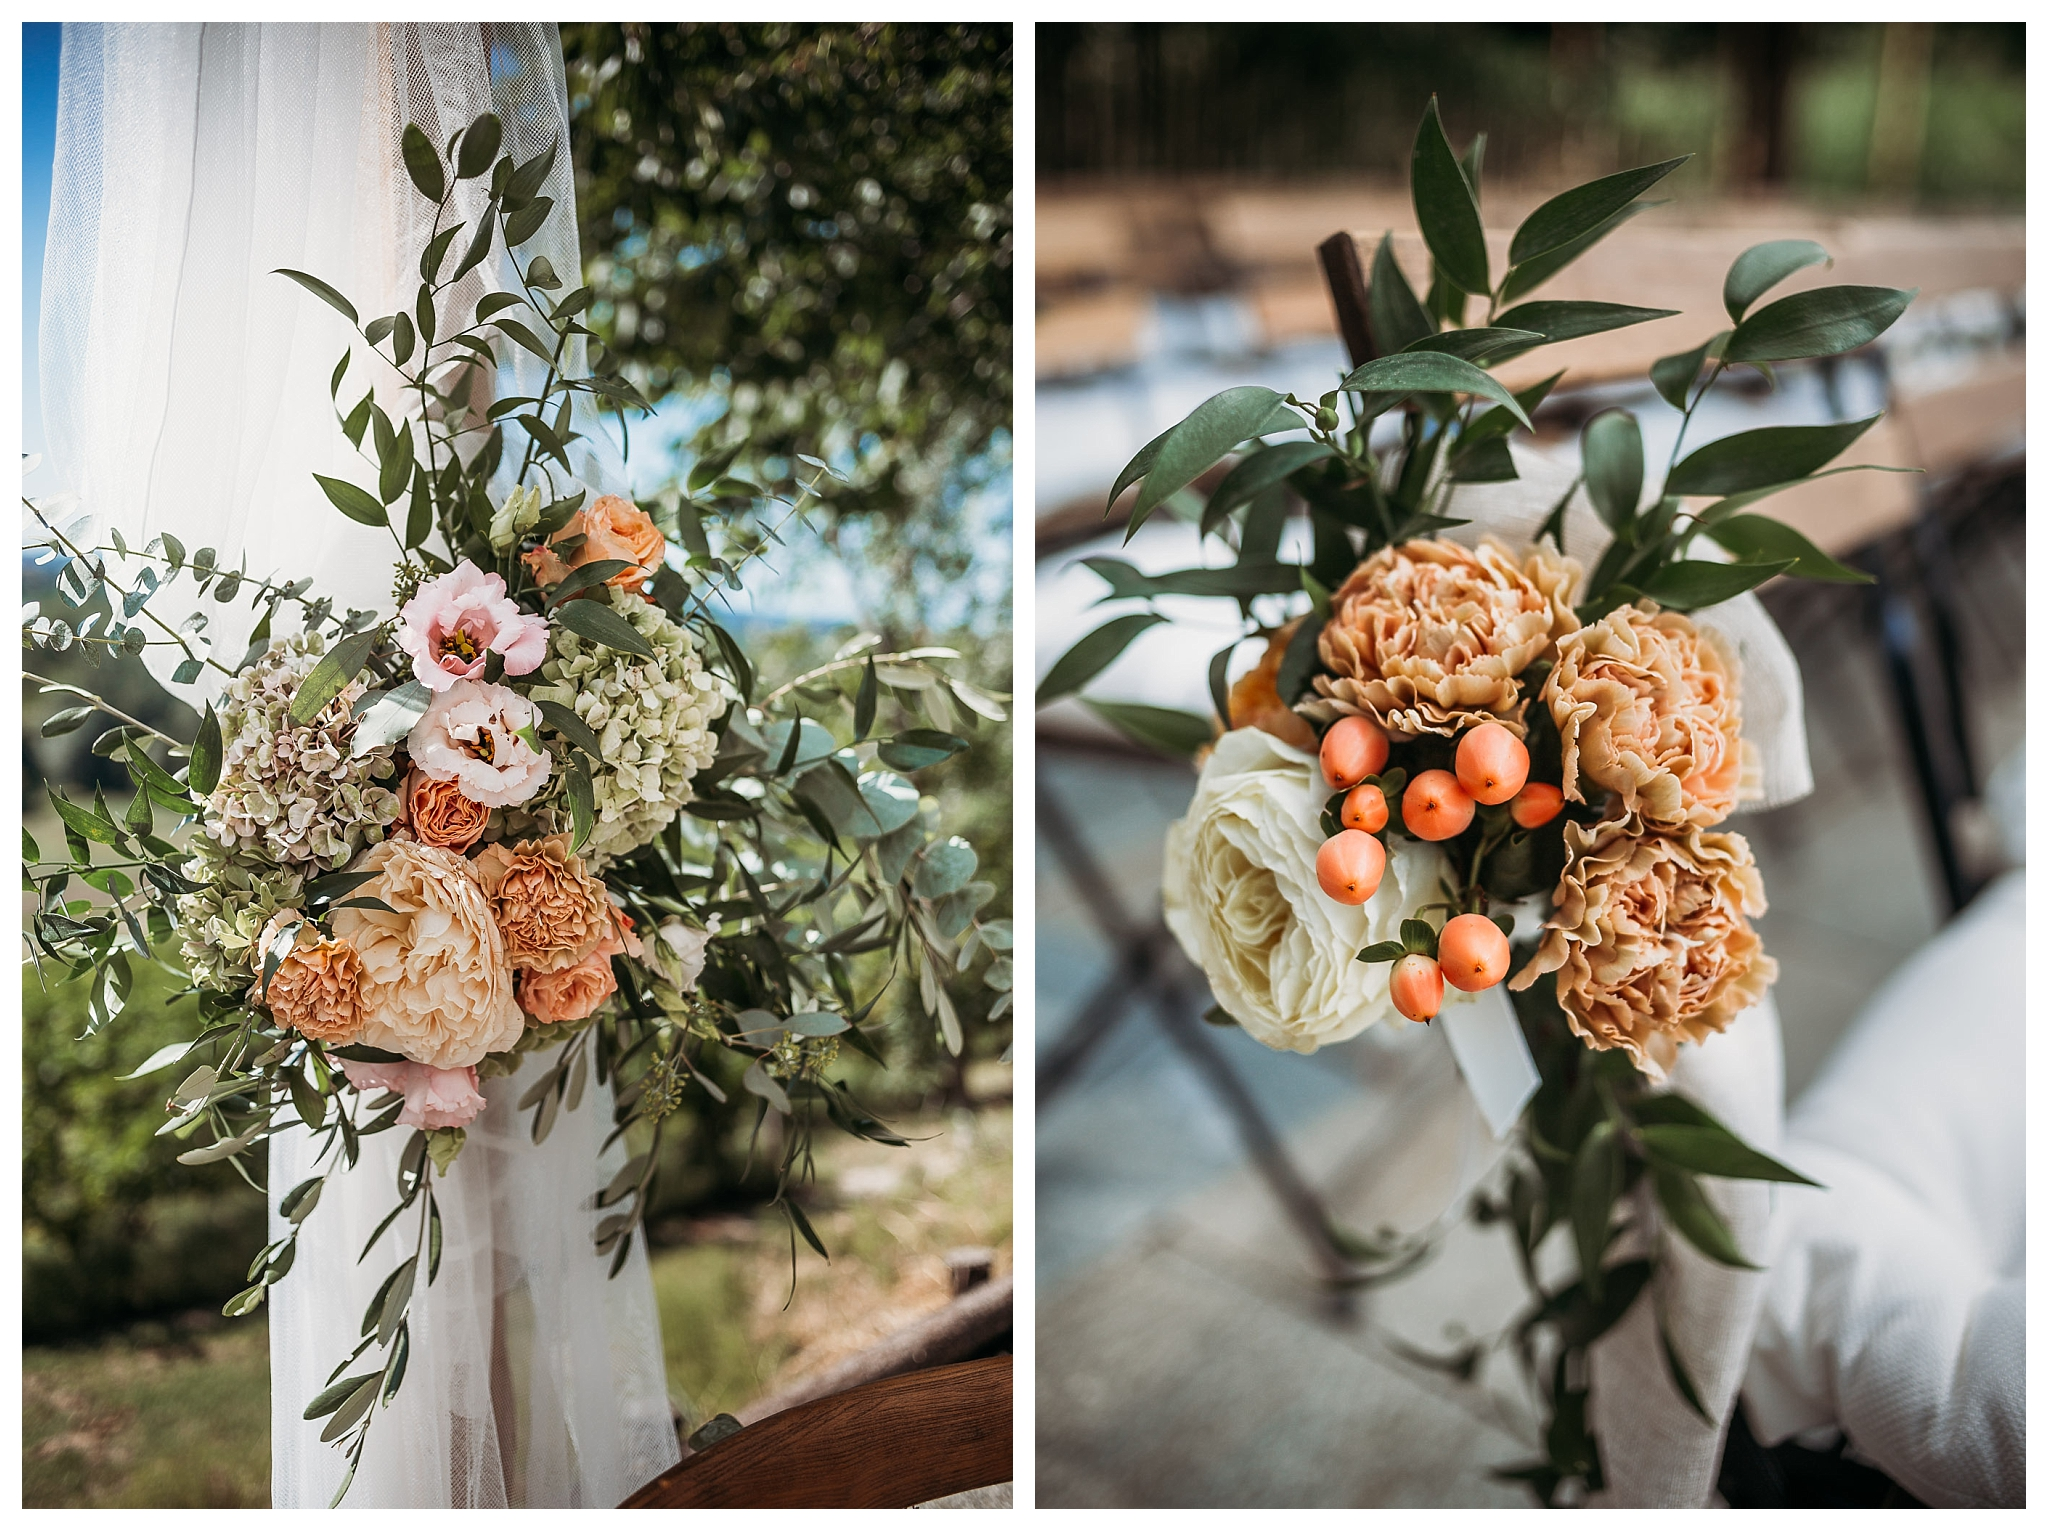 Peach pale pink flowers at wedding